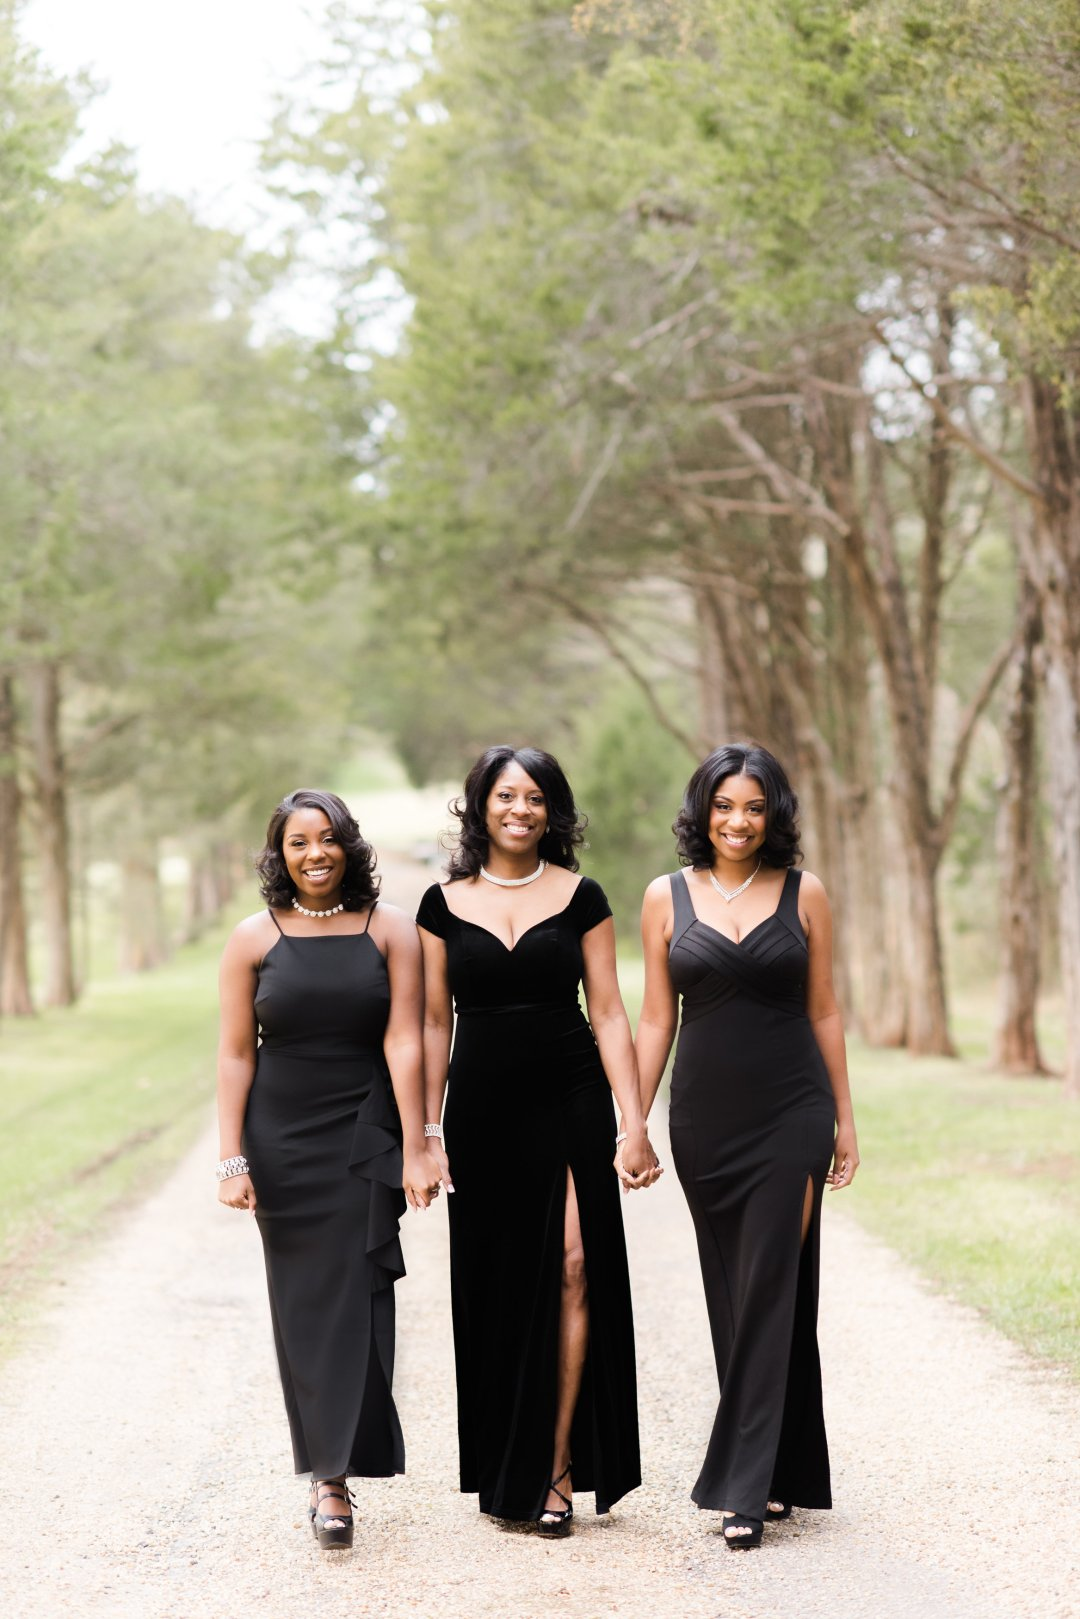 gaines2018-101-1440x2158 Southern Black Love: 25 Anniversary Shoot with the Gaines Family